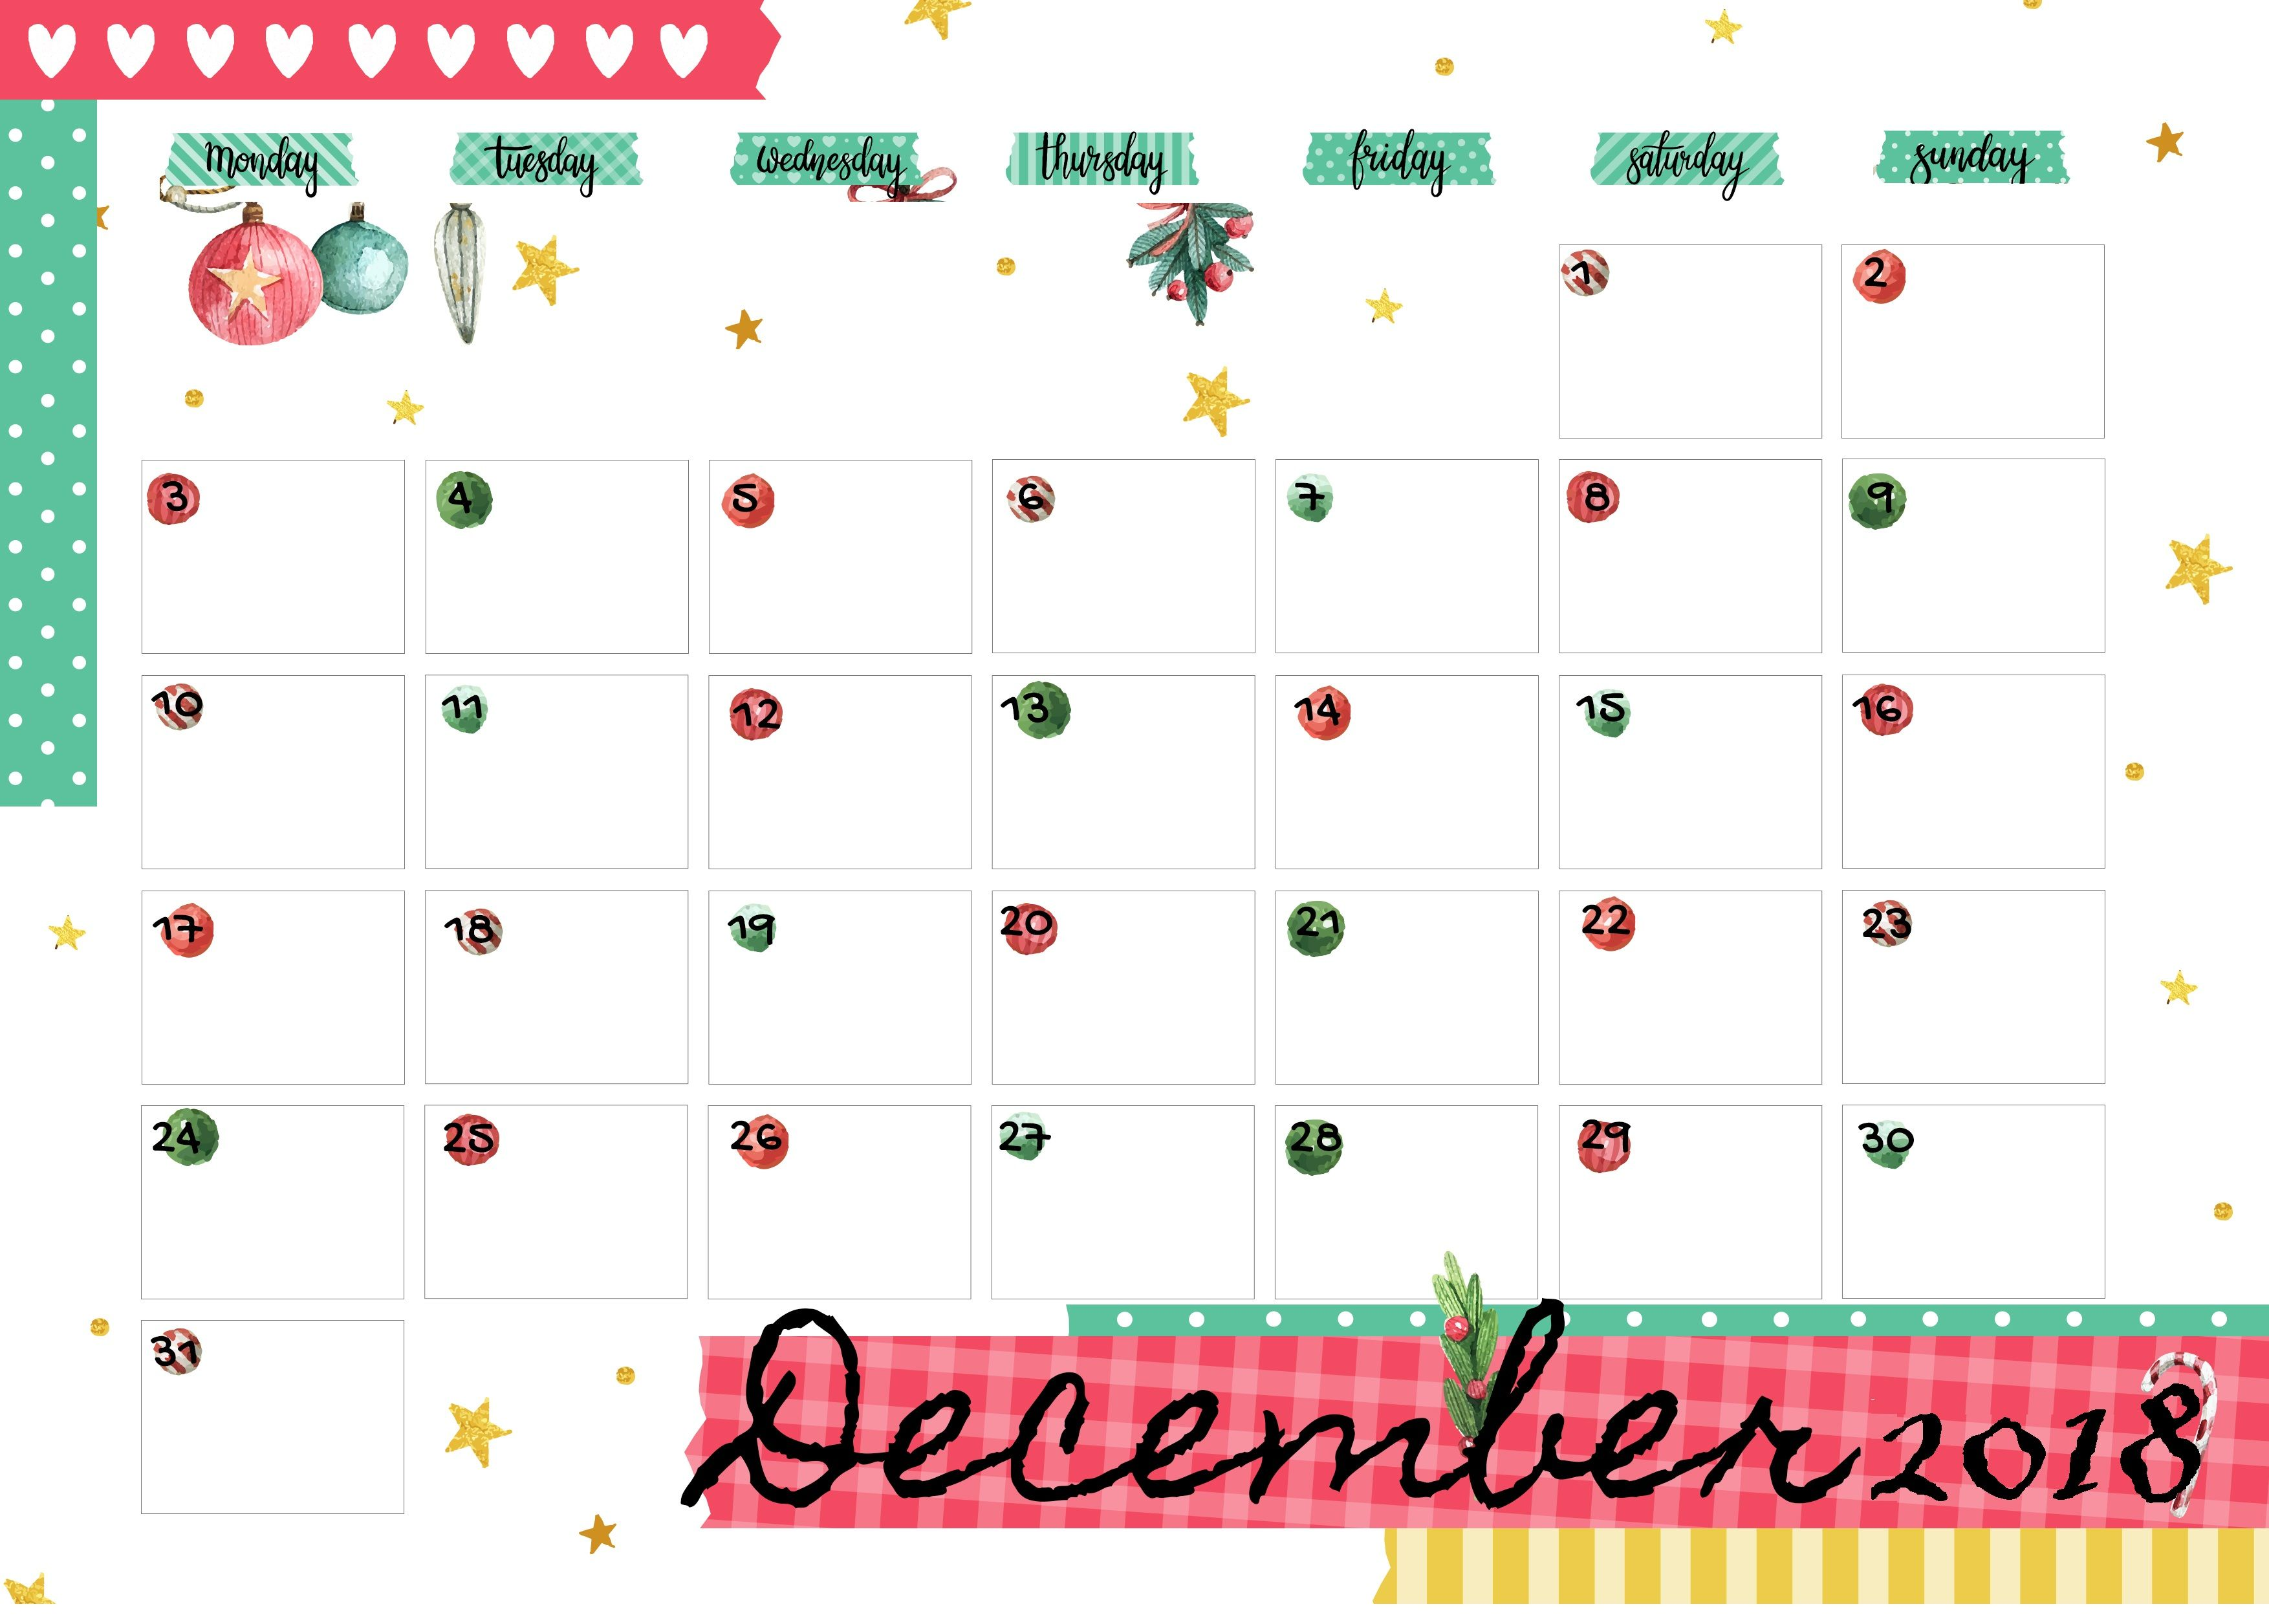 Printable December Calendar Templates For Personal And Professional Work